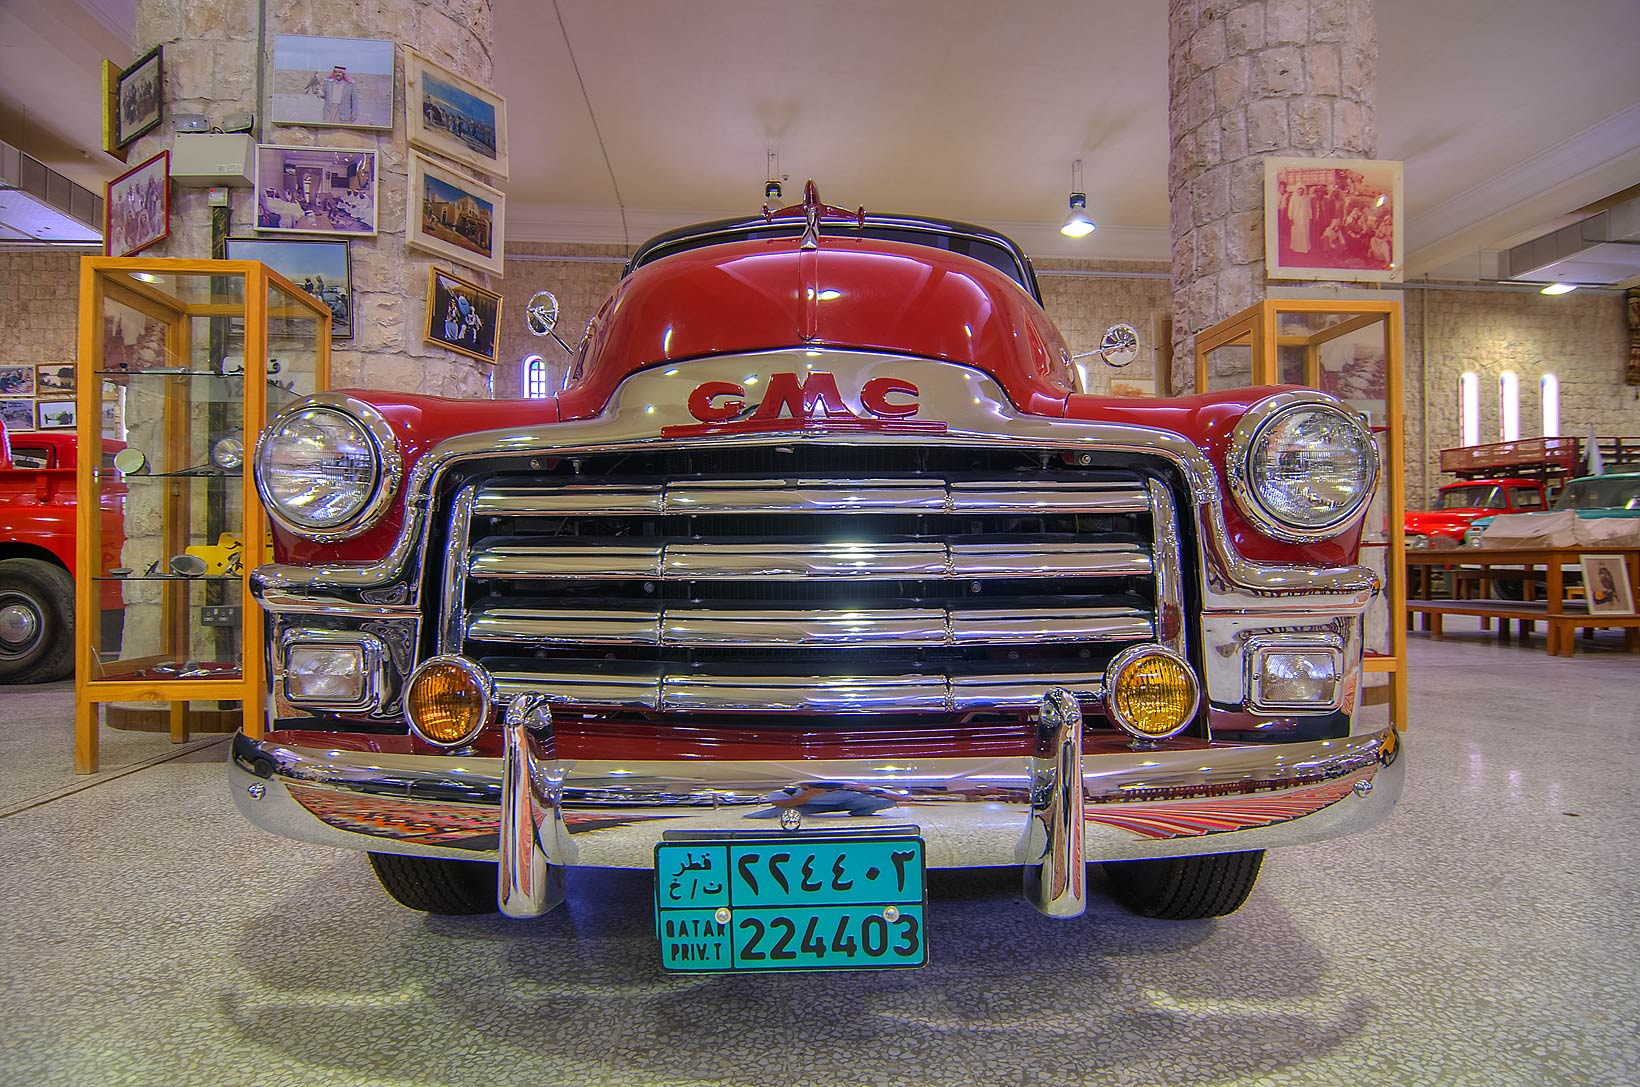 Vintage cars - search in pictures